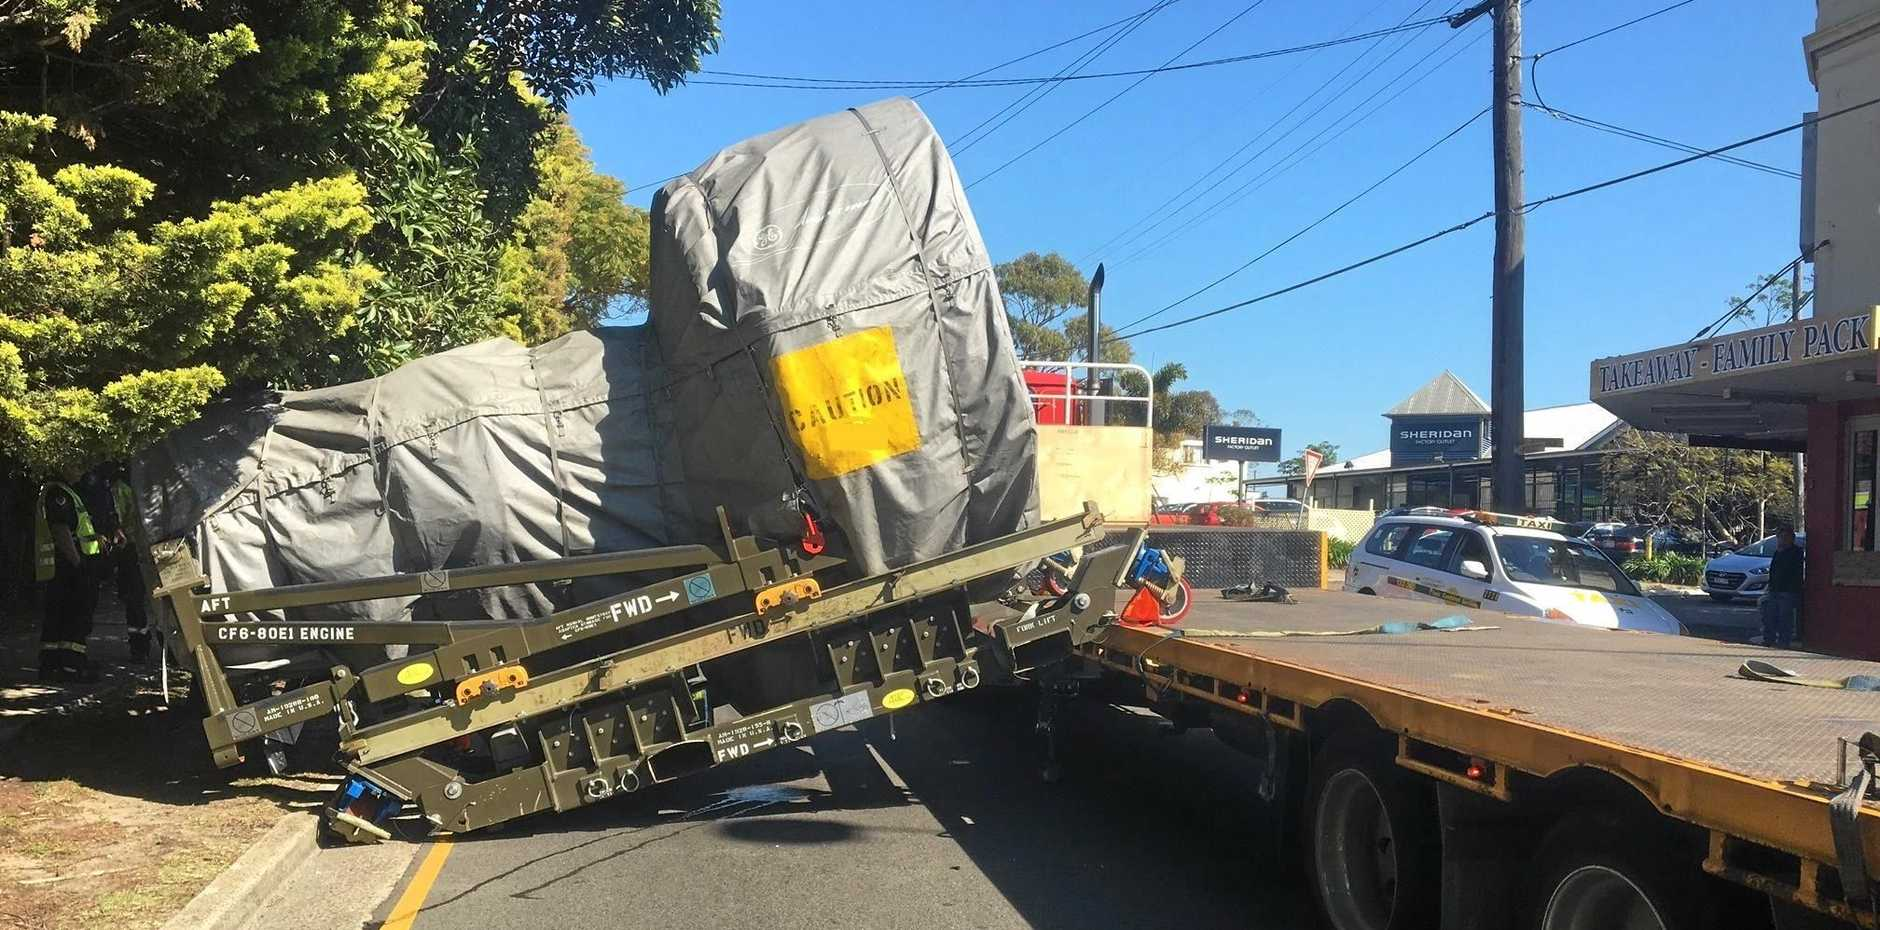 SECURE YOUR LOAD: An aircraft engine has fallen off a trailer in Sydney's south, due to insufficient load restraints.